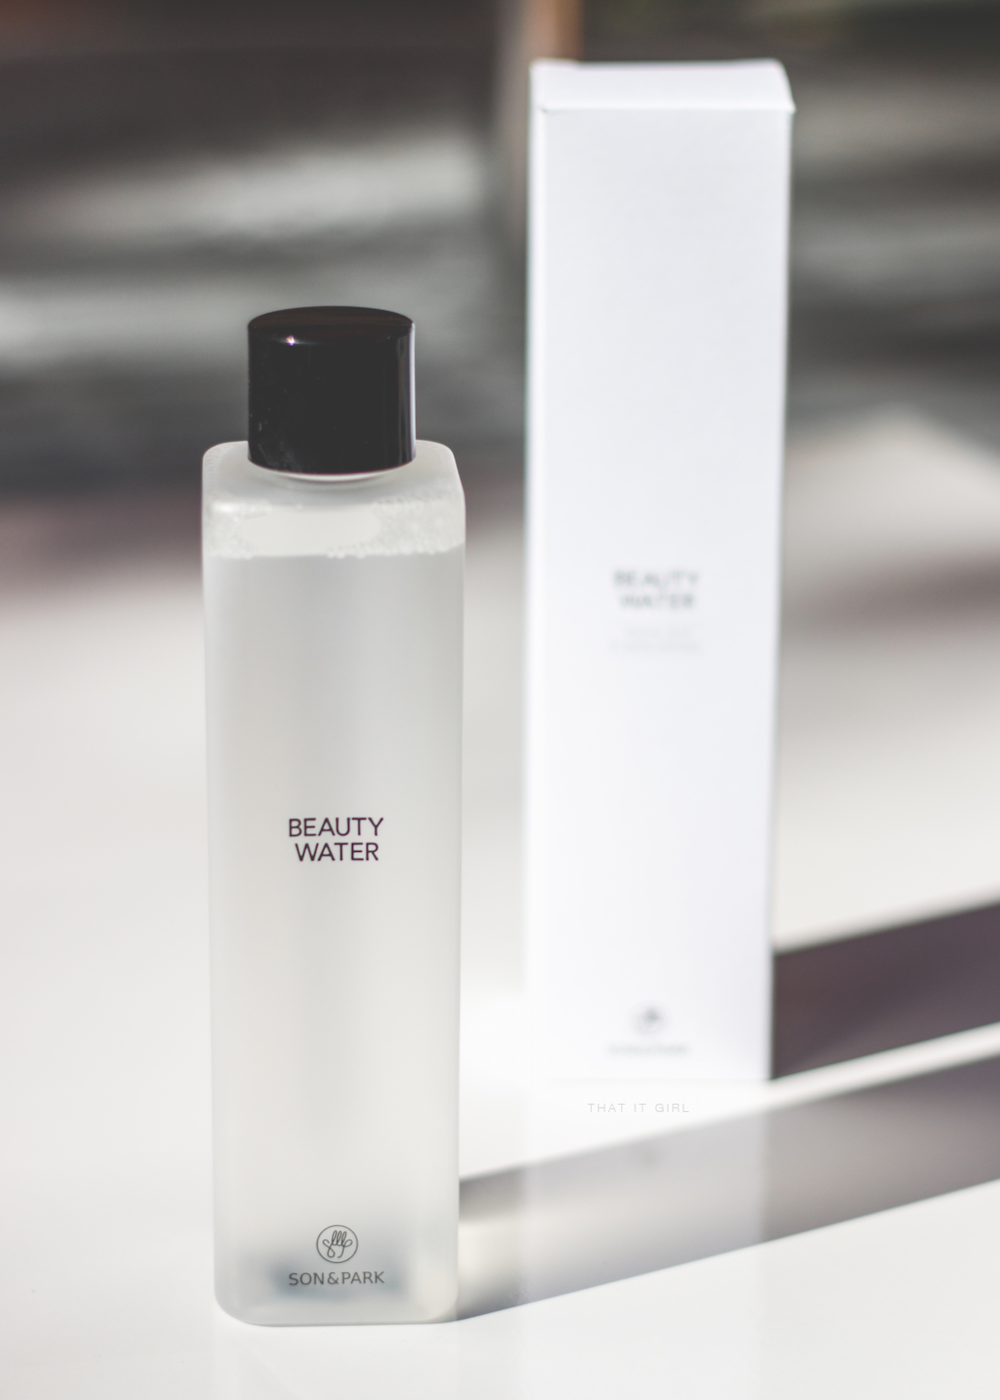 The current toning water i use for the 7 skin method: Son & park's beauty water                                                                       .image from that it girl